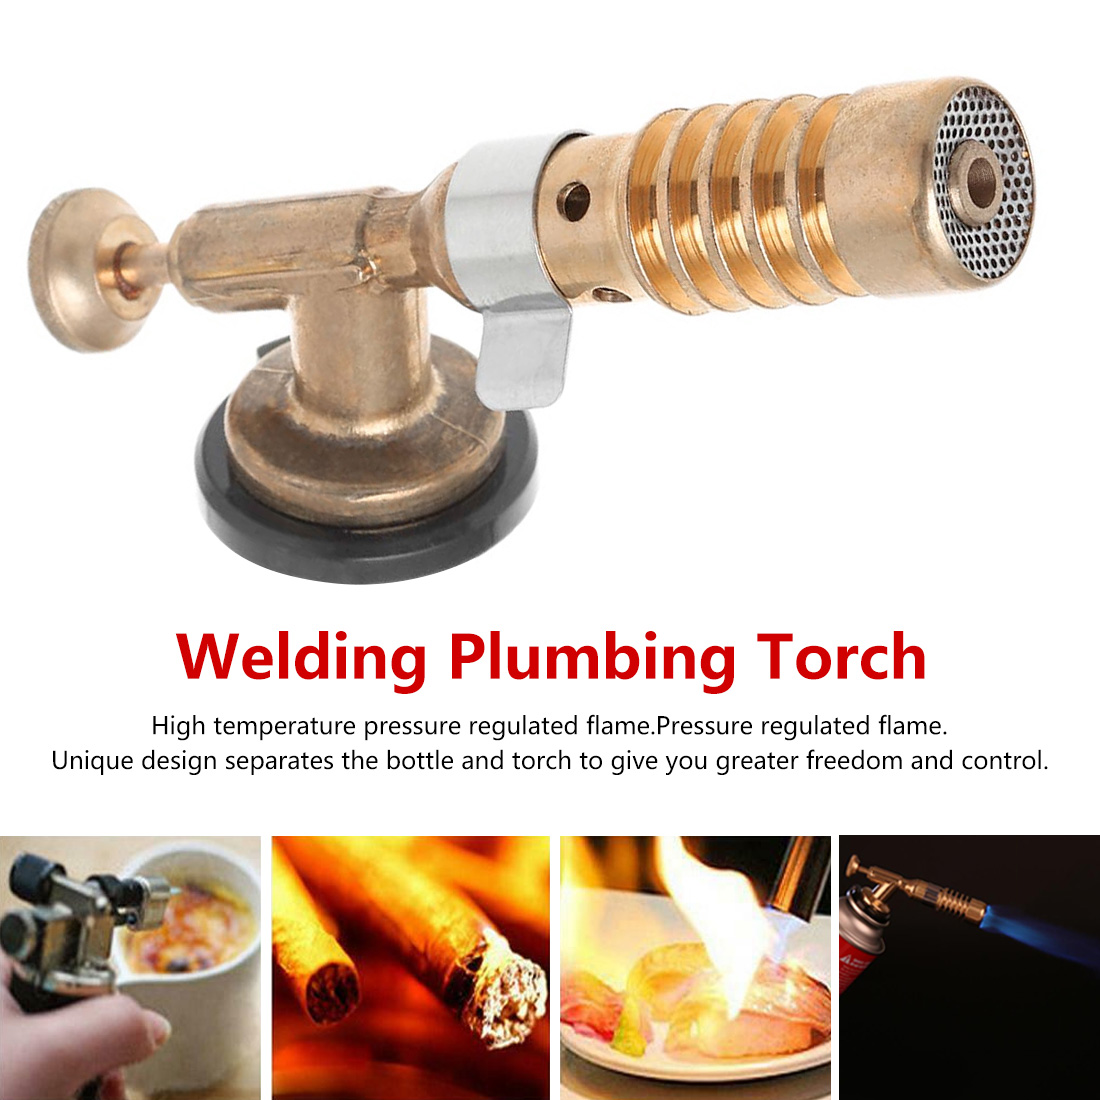 Portable Gas Torch Flame Gun Blowtorch Copper Flame Butane Gas-Burner Lighter Heating Welding For Outdoor Camping Spray Gun